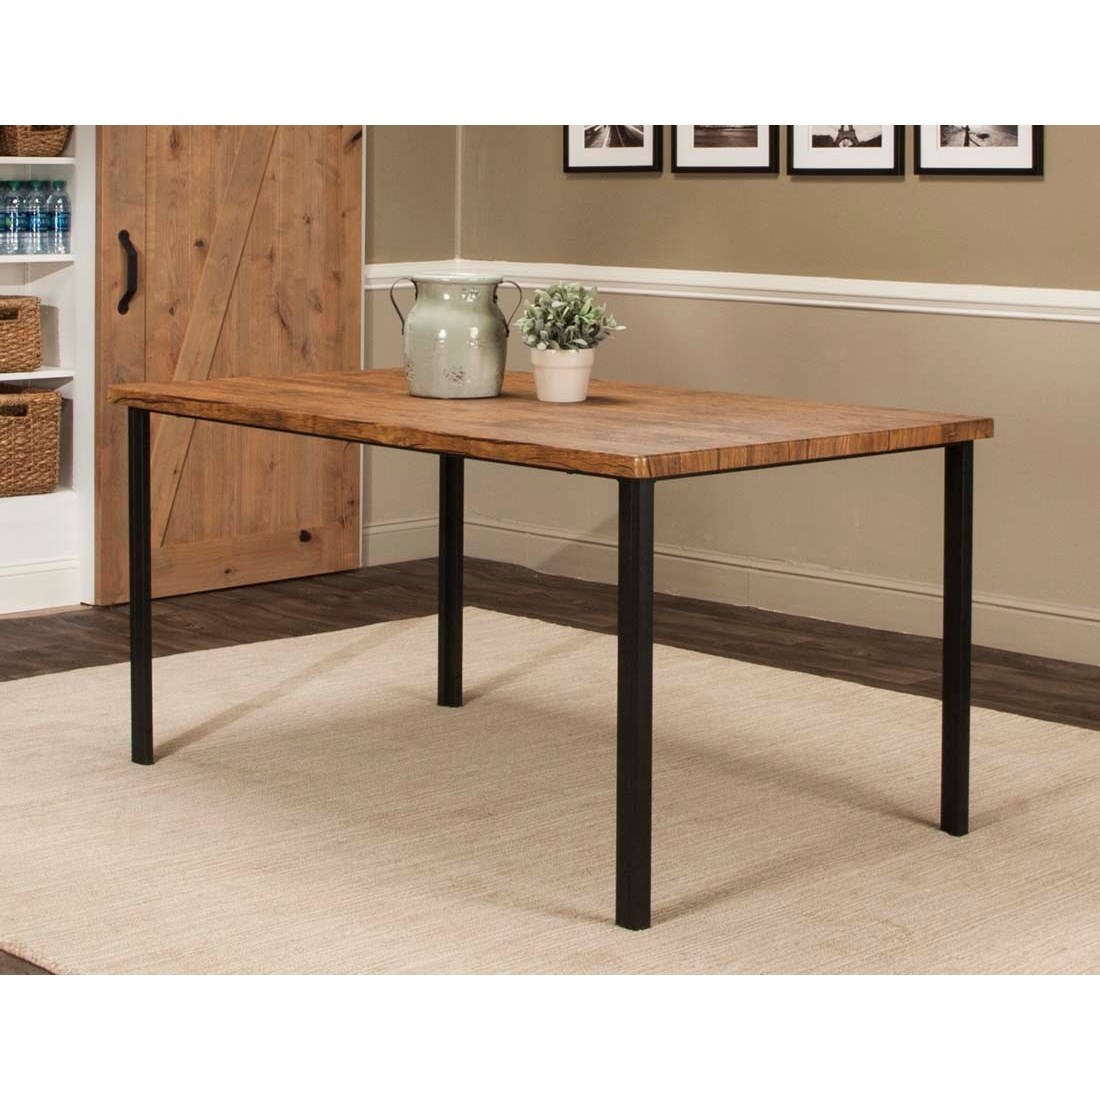 Adler Dining Table by Cramco, Inc at Value City Furniture